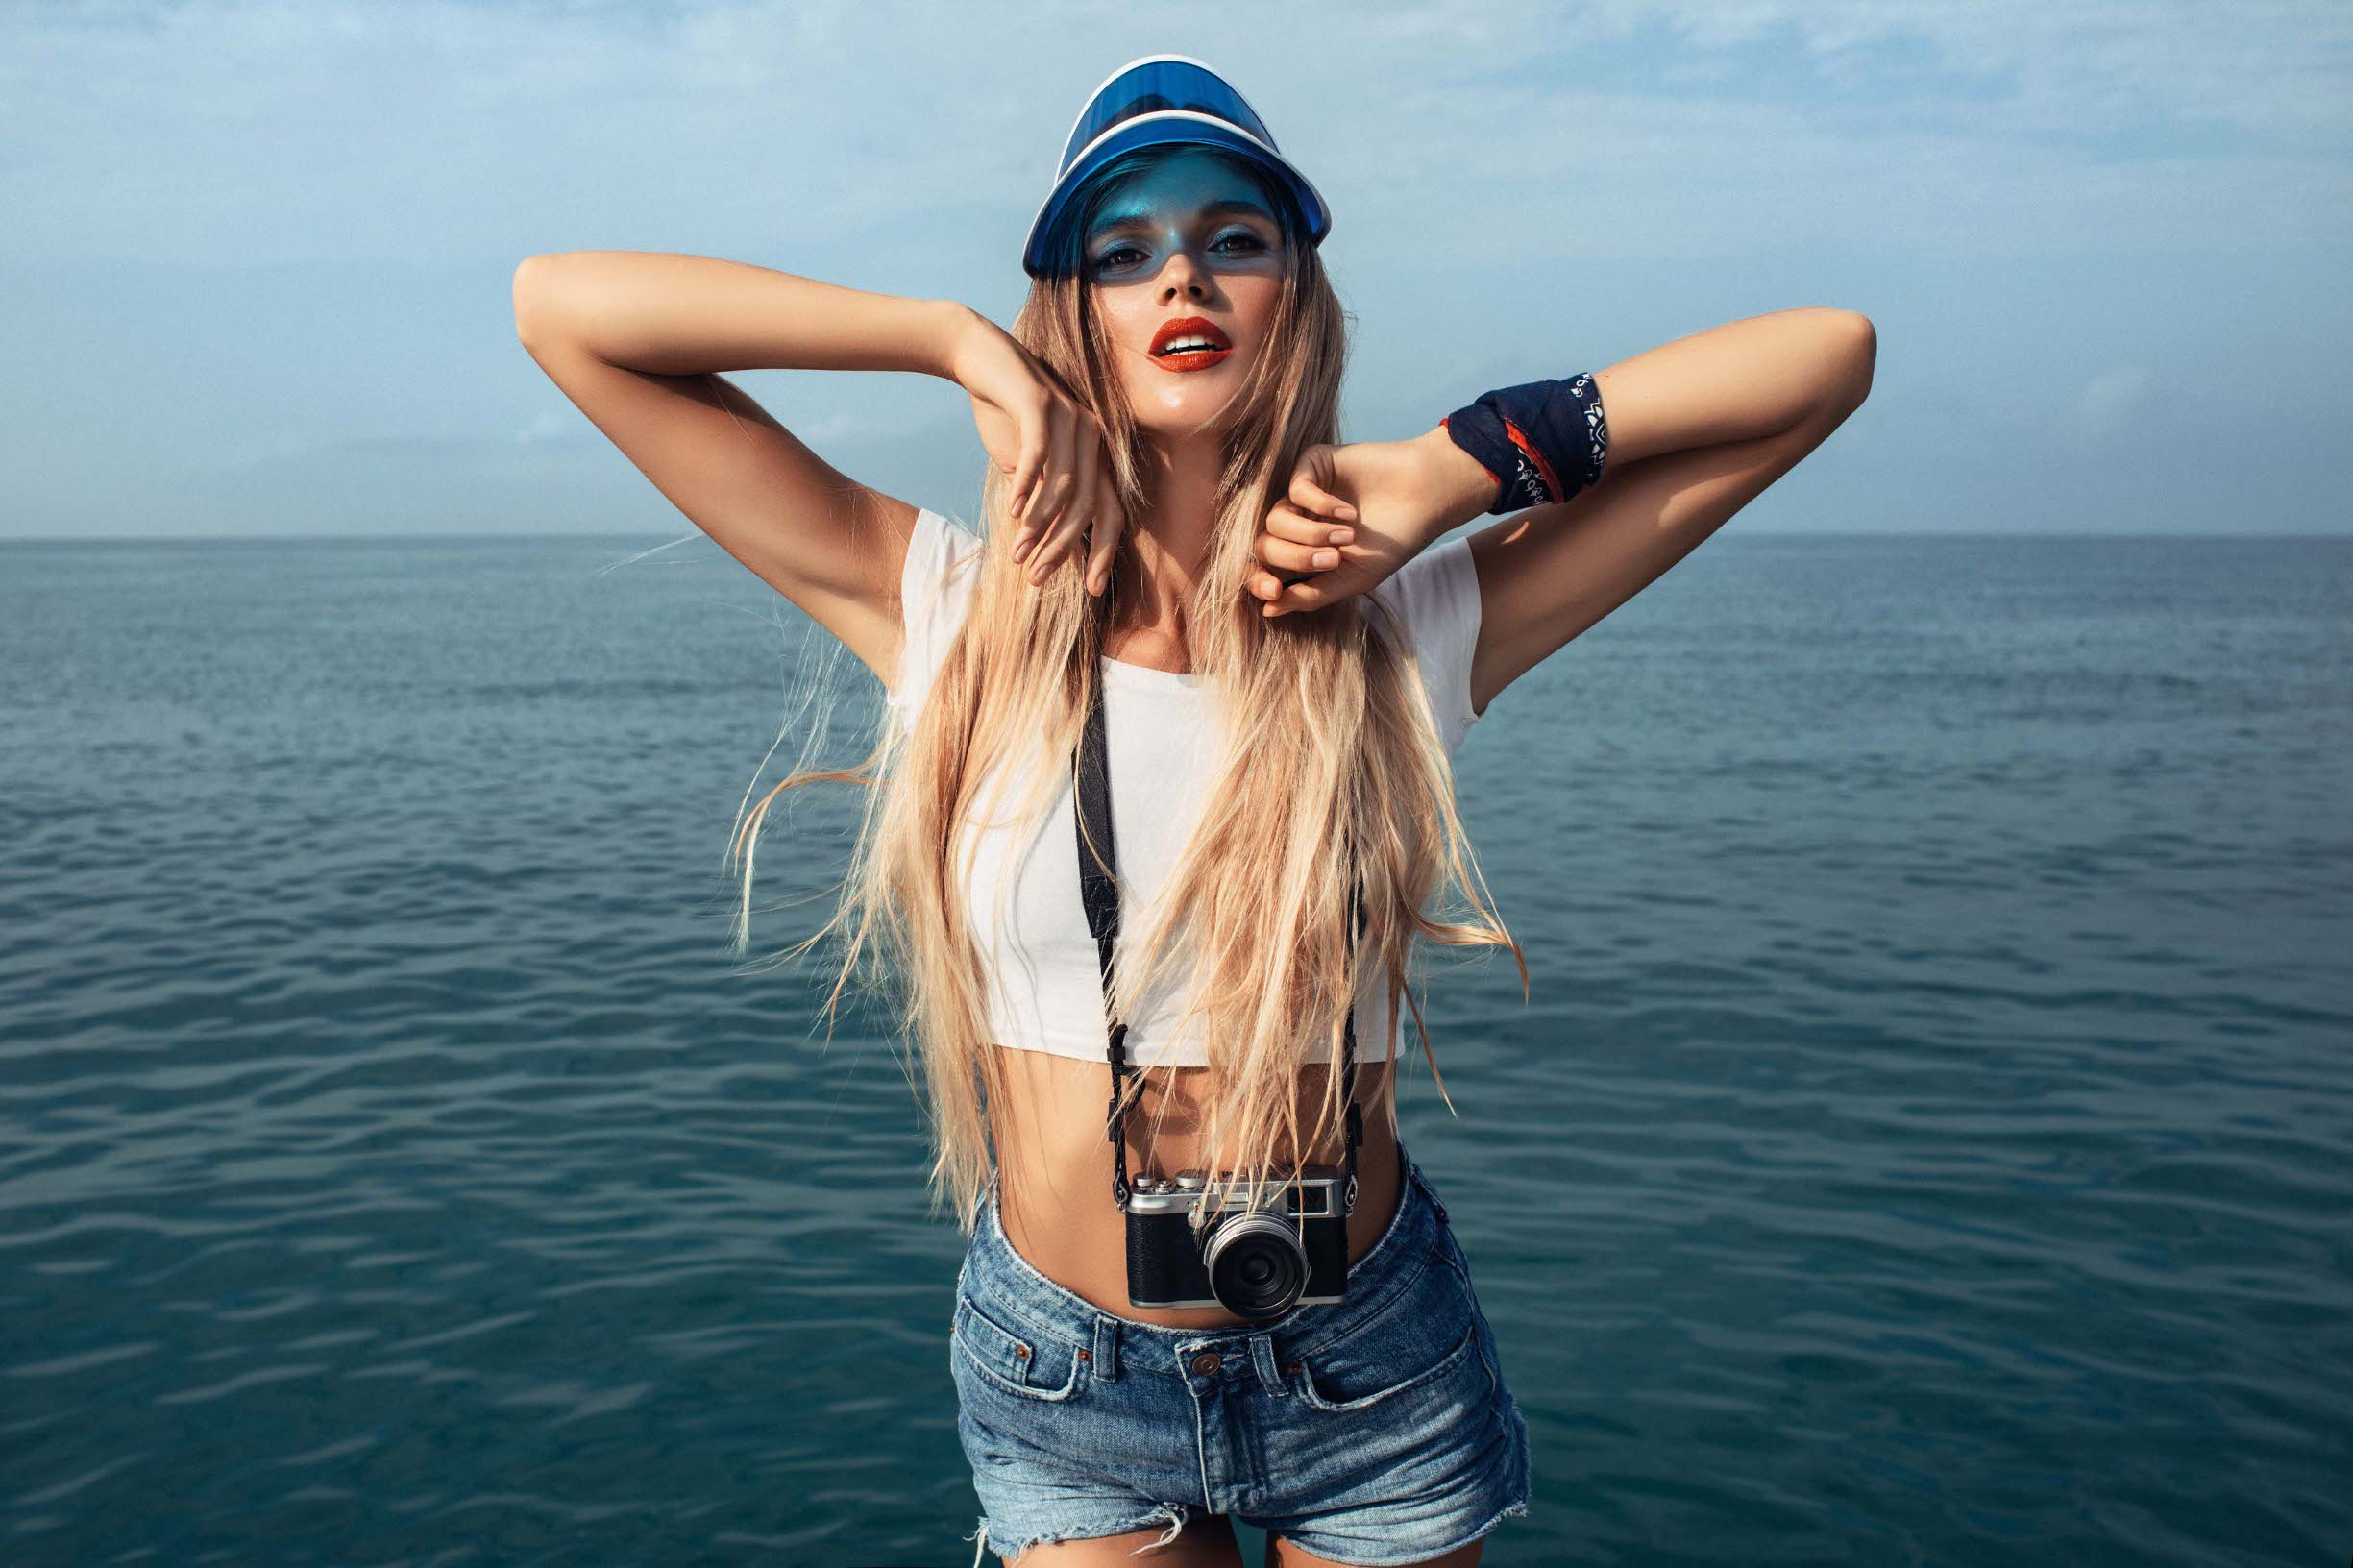 Beautiful woman posing on sea background in blue shorts